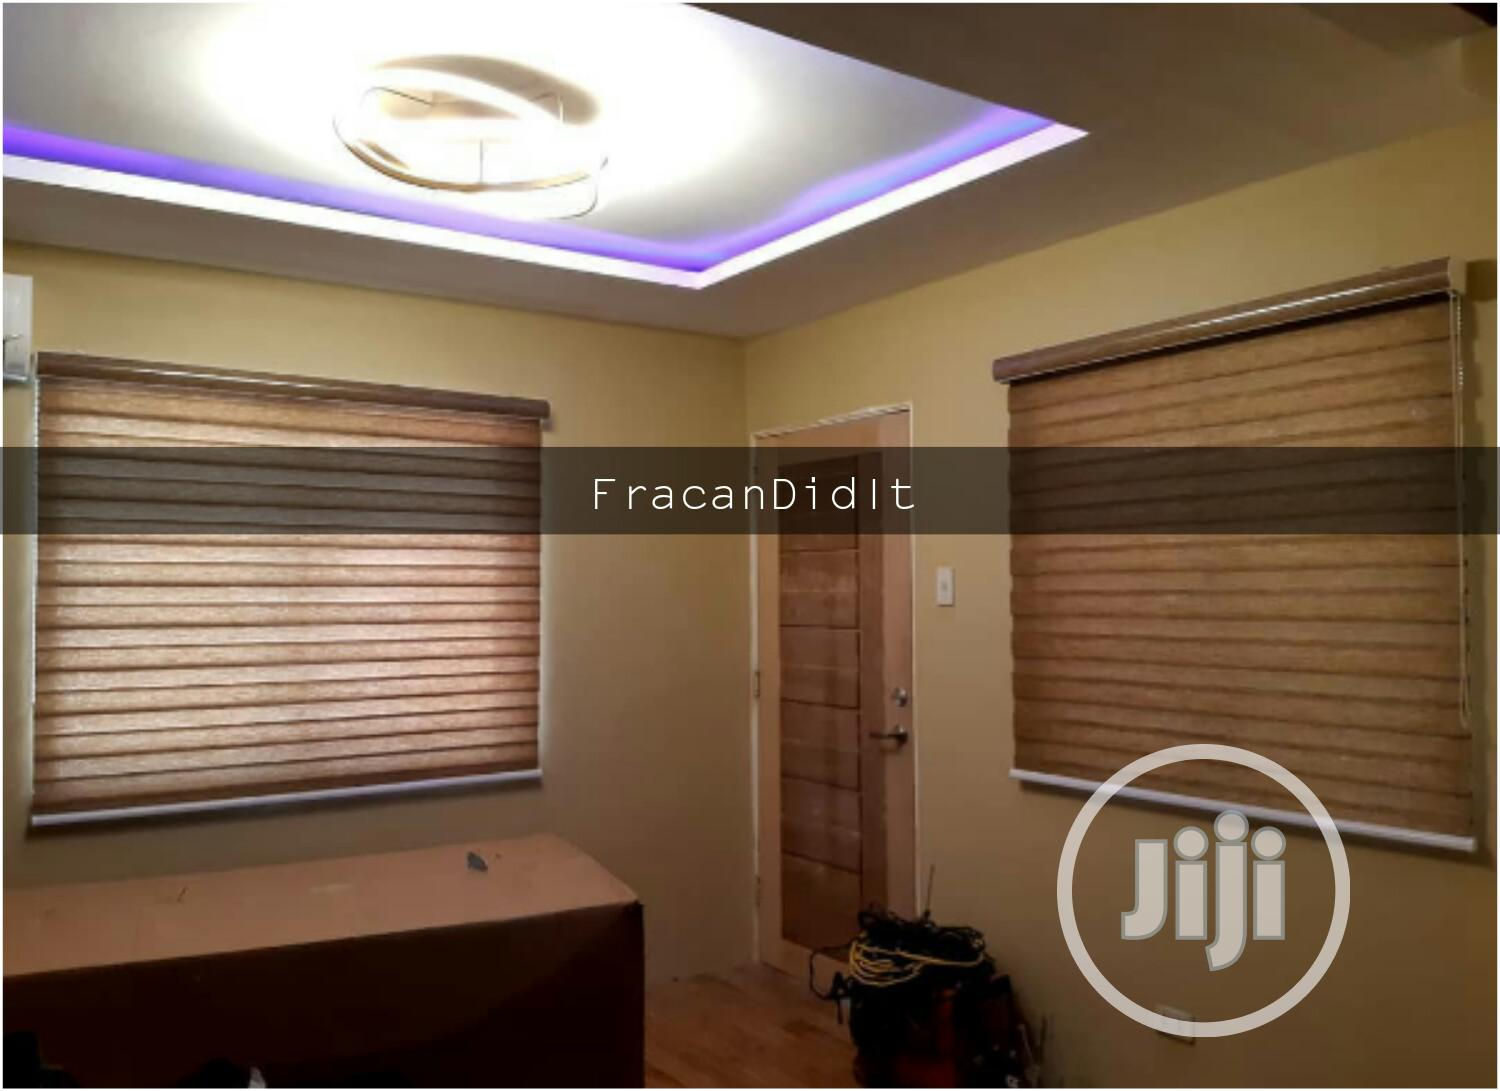 Trendy Window Blinds. Free Installation Within Abuja | Building & Trades Services for sale in Gudu, Abuja (FCT) State, Nigeria